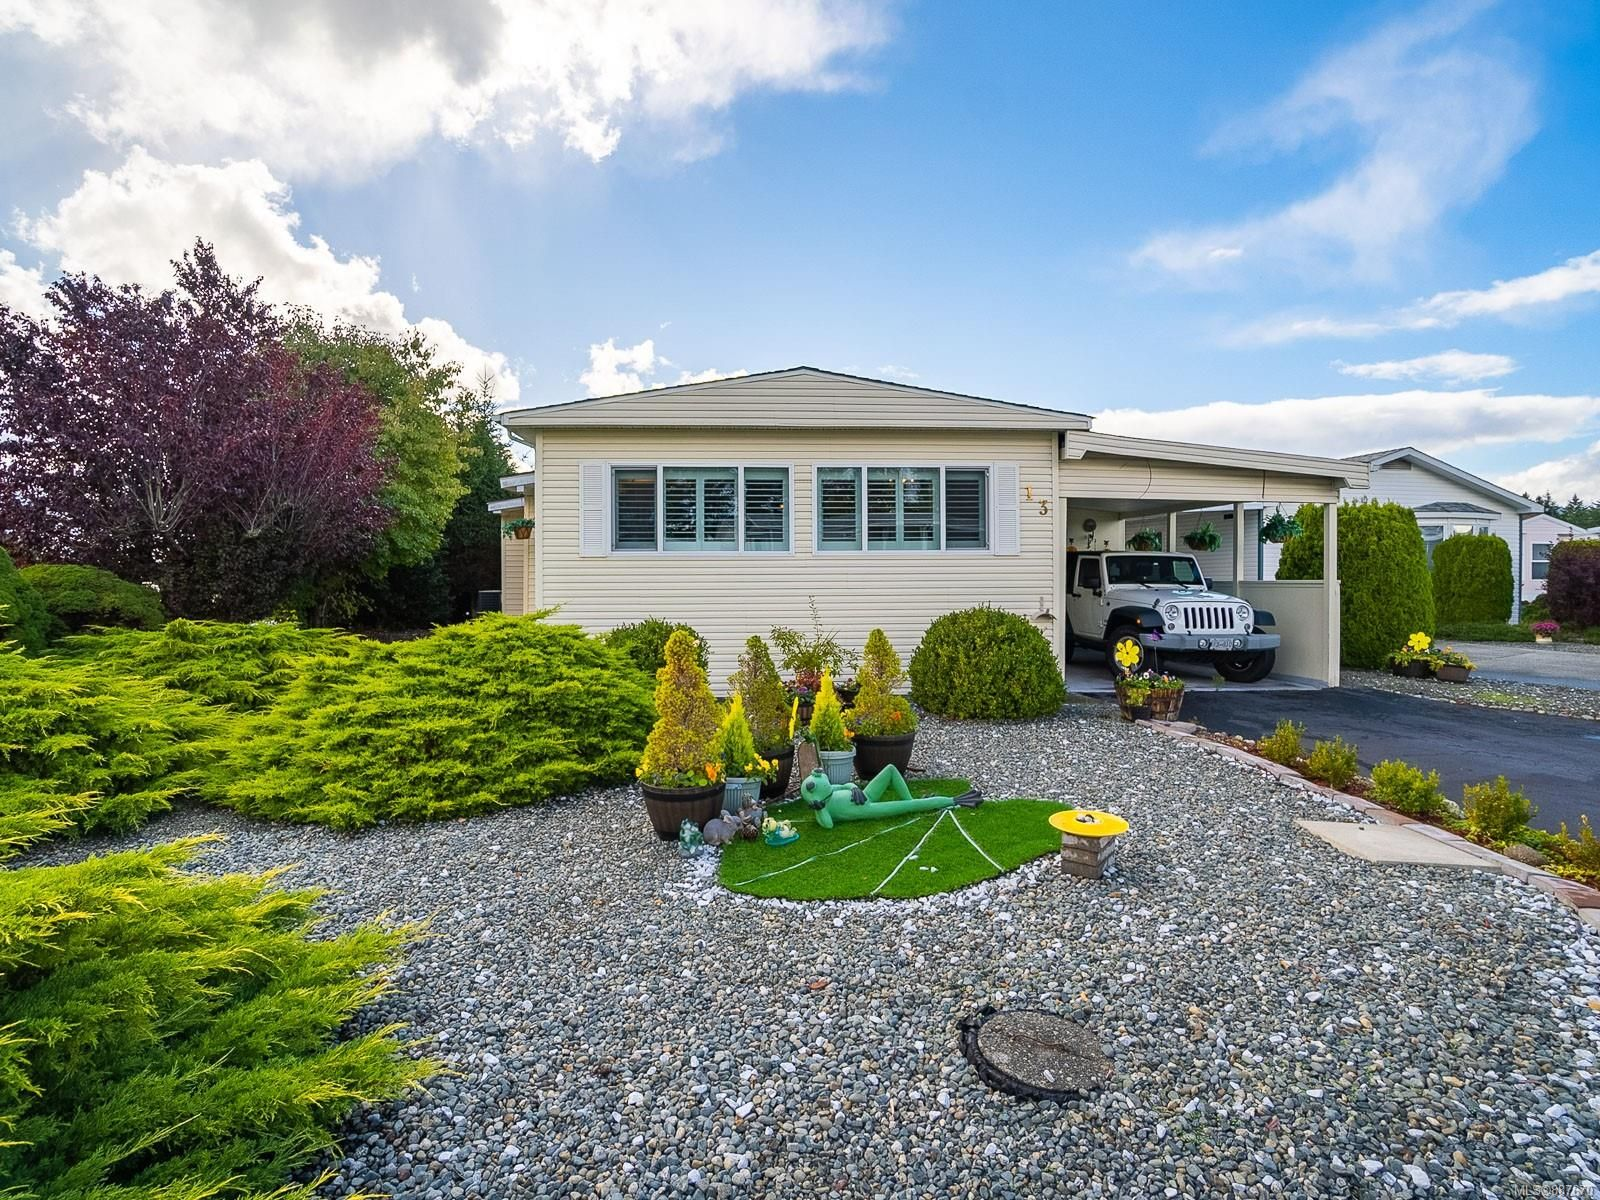 Main Photo: 13 6325 Metral Dr in Nanaimo: Na Pleasant Valley Manufactured Home for sale : MLS®# 887670